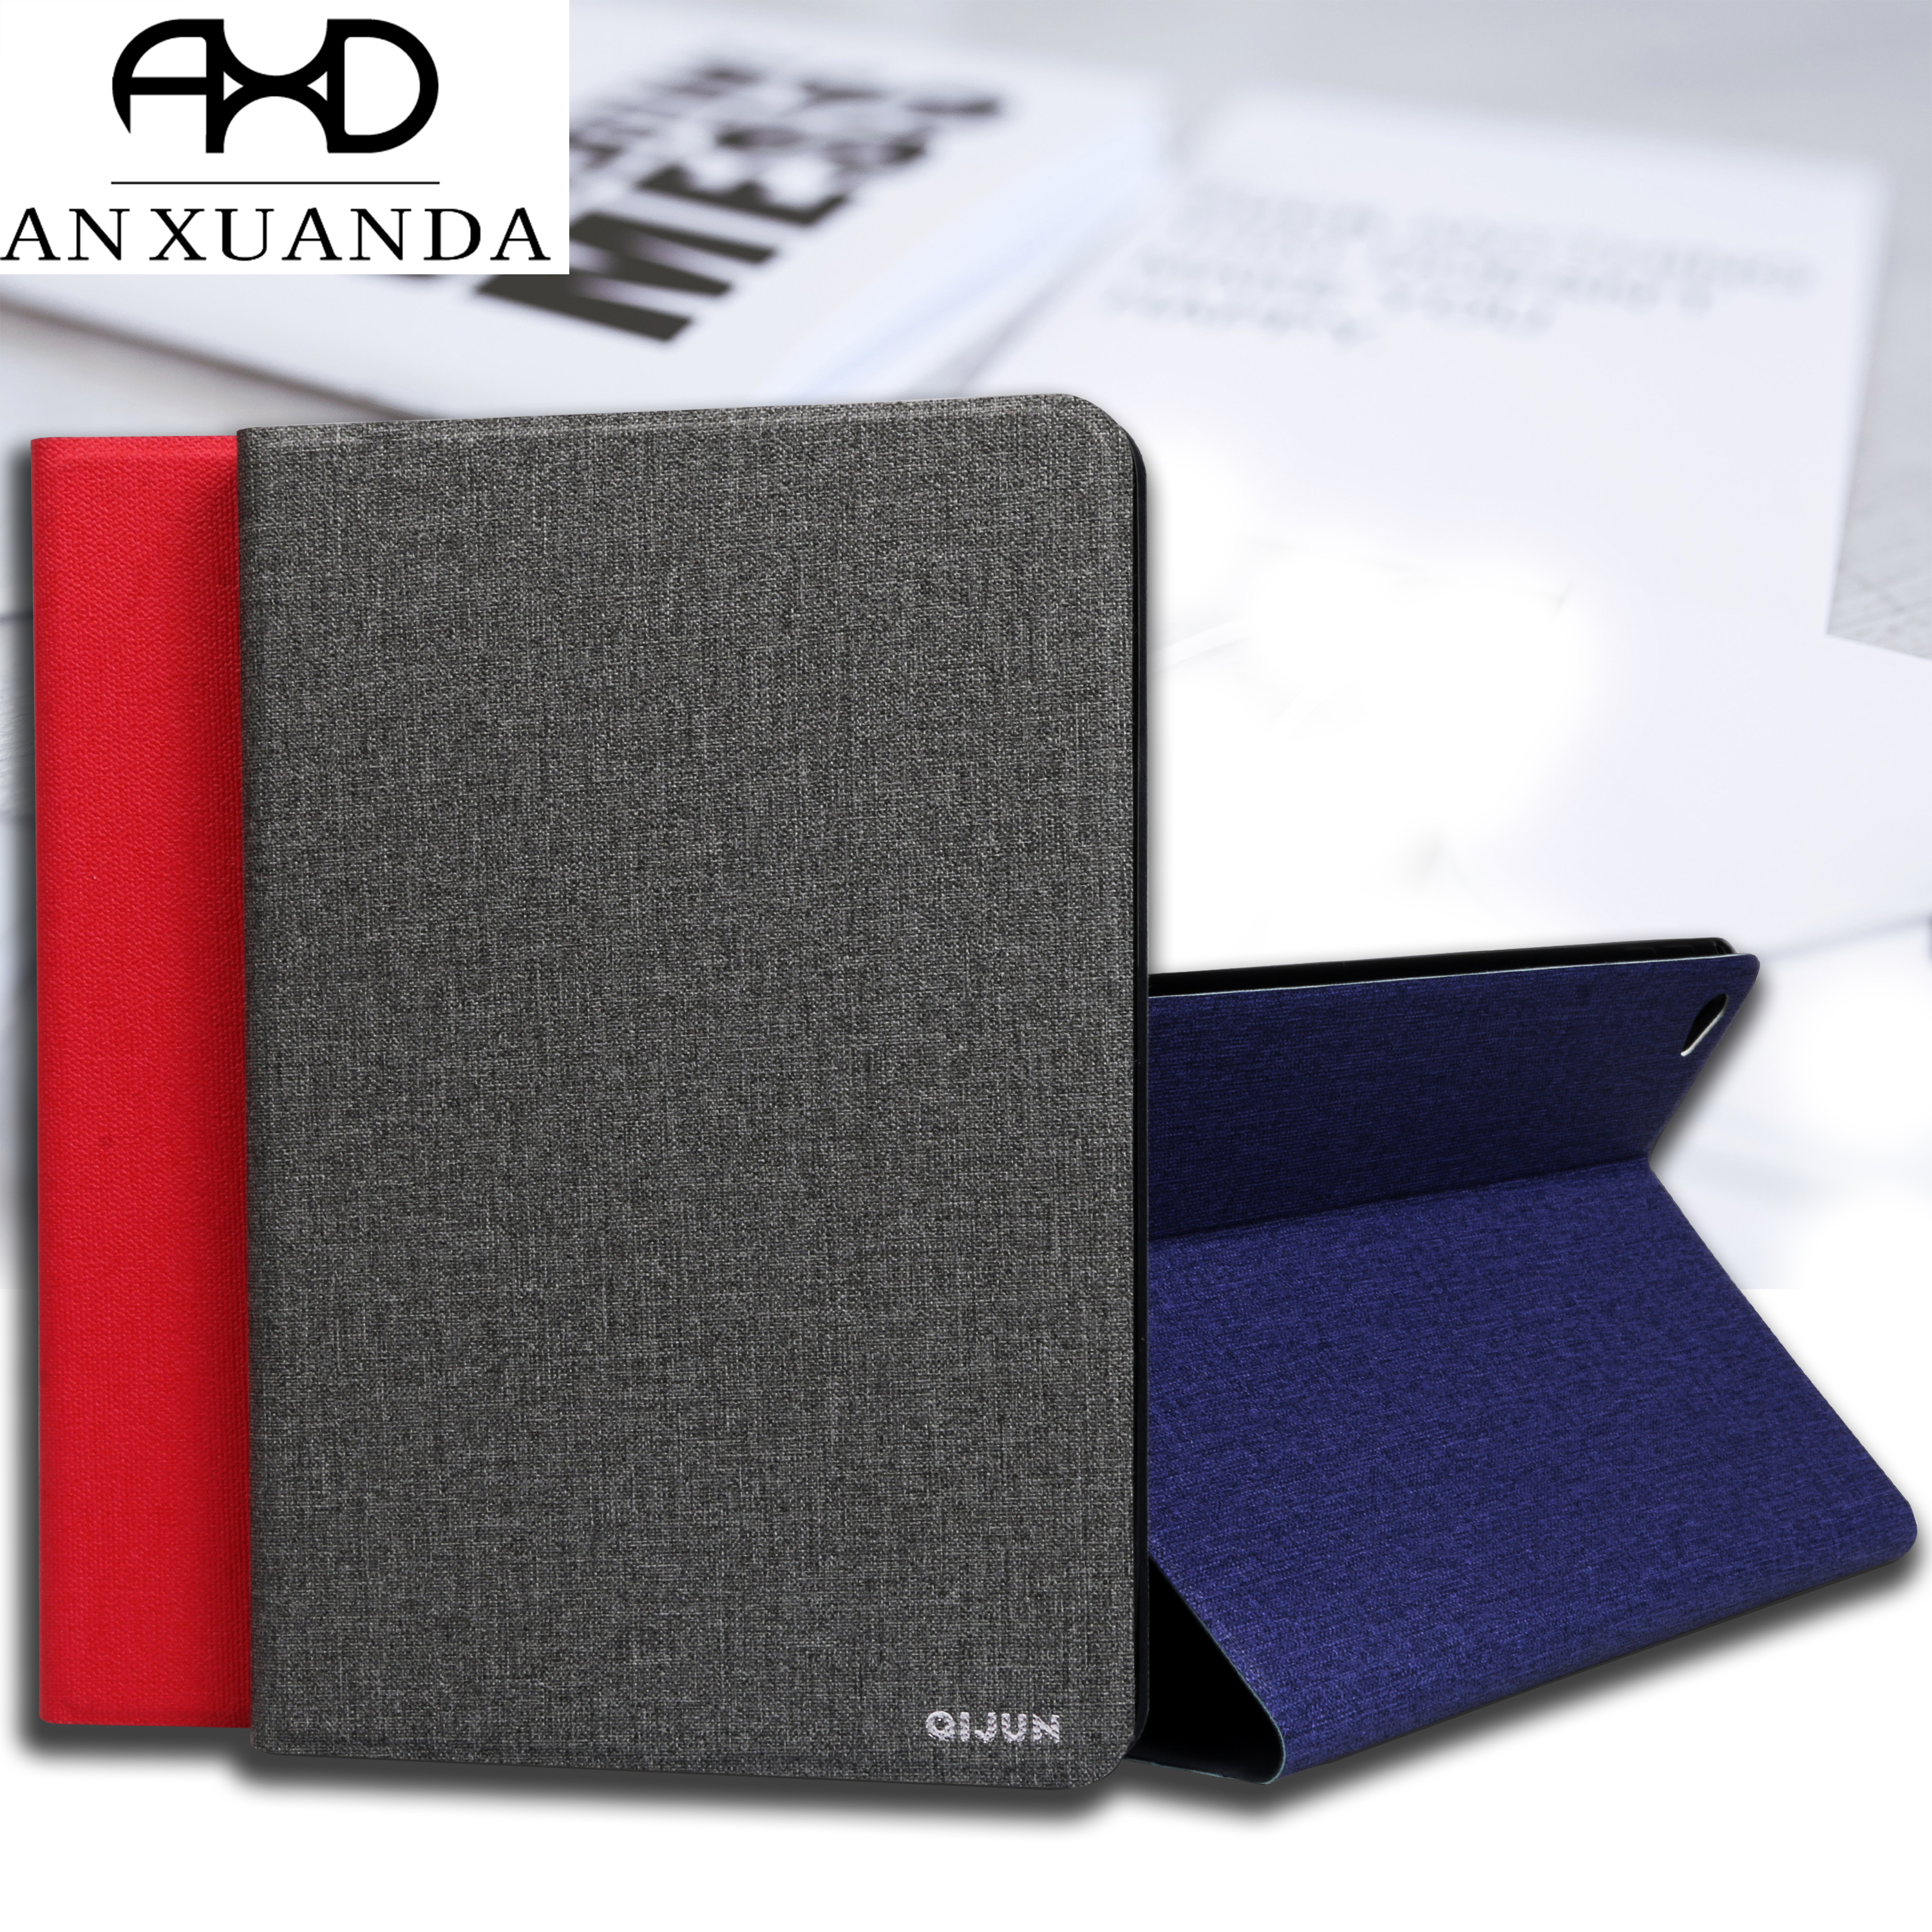 For Huawei MediaPad T5 8.0 M5 Lite QIJUN Case For Honor Play Pad 5 Tablet 5 JDN2-W09/AL00 Slim Flip Cover Soft Protective Shell